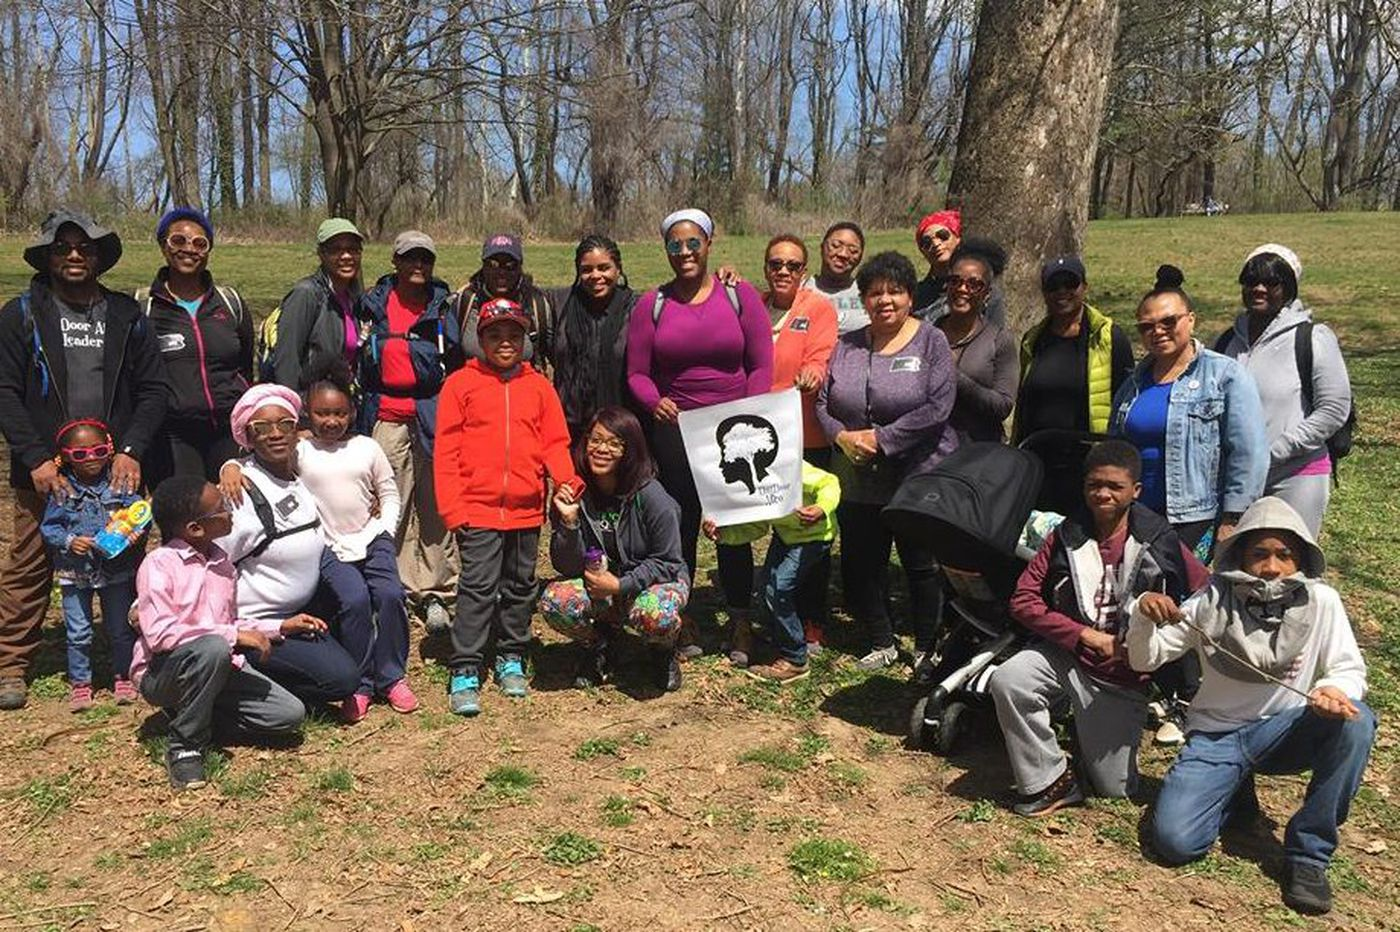 'We're trying to make a generation shift': Meet the groups diversifying the great outdoors